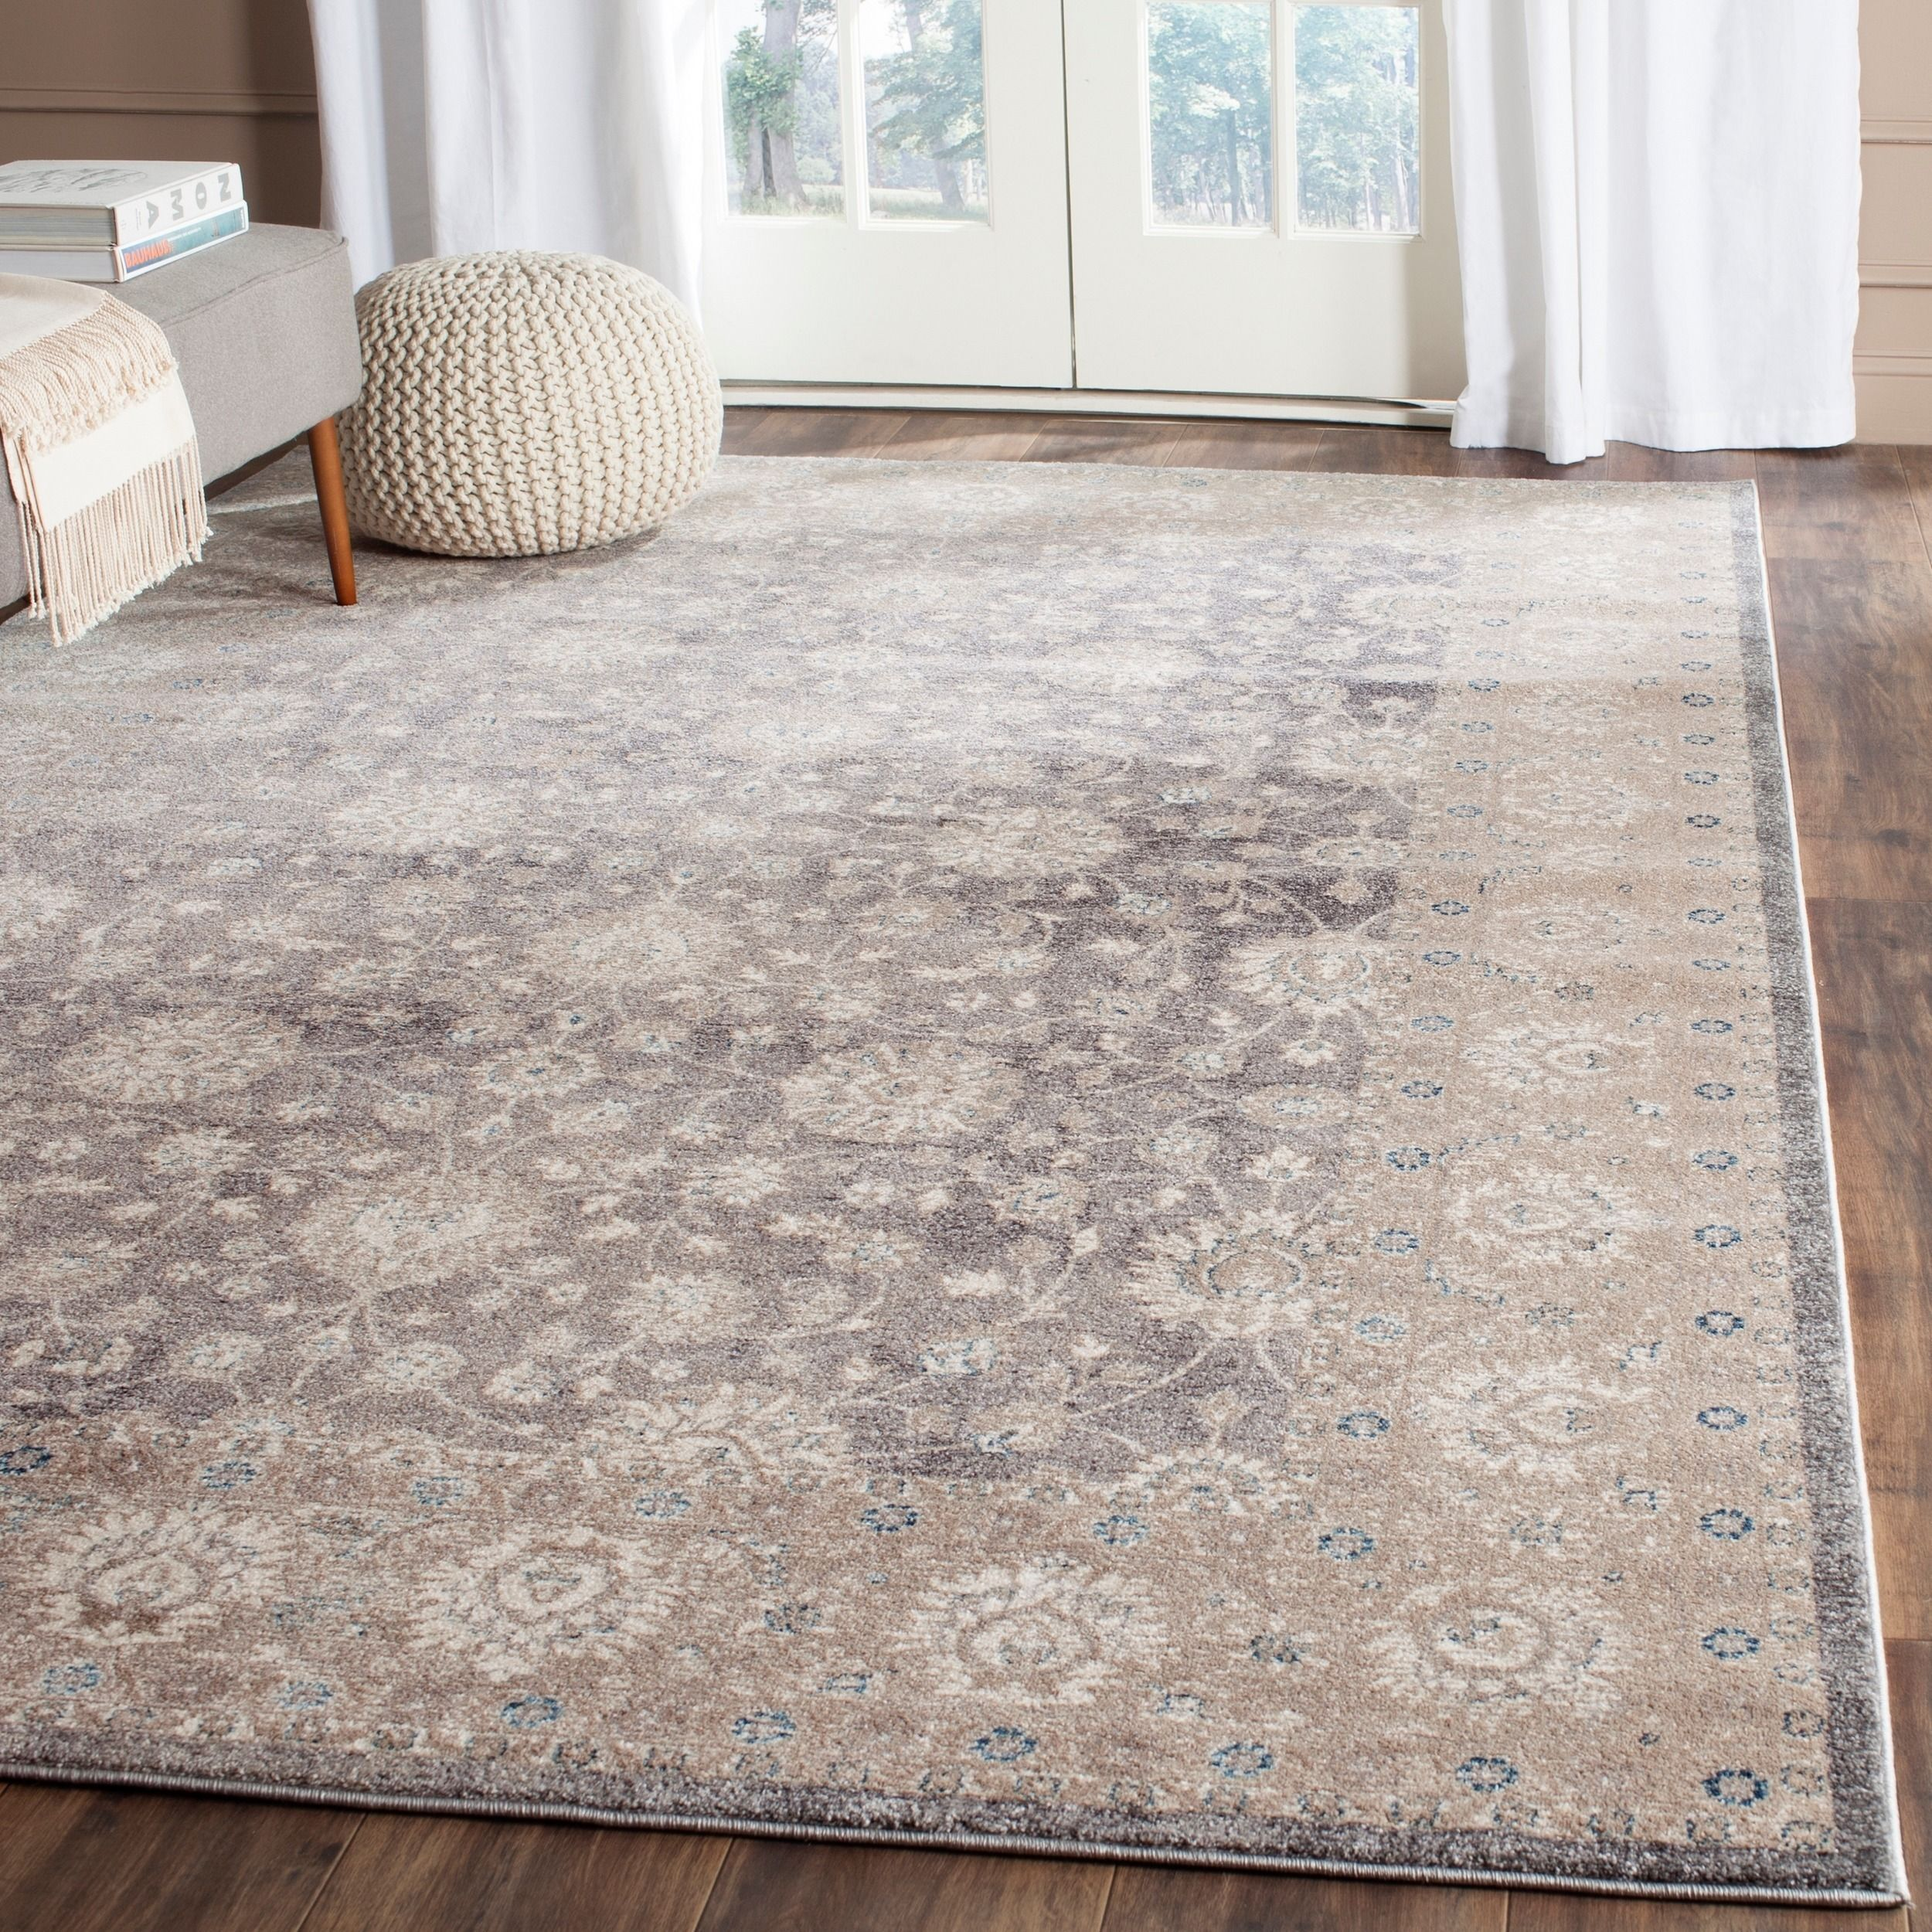 safavieh sofia vintage oriental light grey  beige distressed rug (' x ' ). safavieh sofia vintage oriental light grey  beige distressed rug